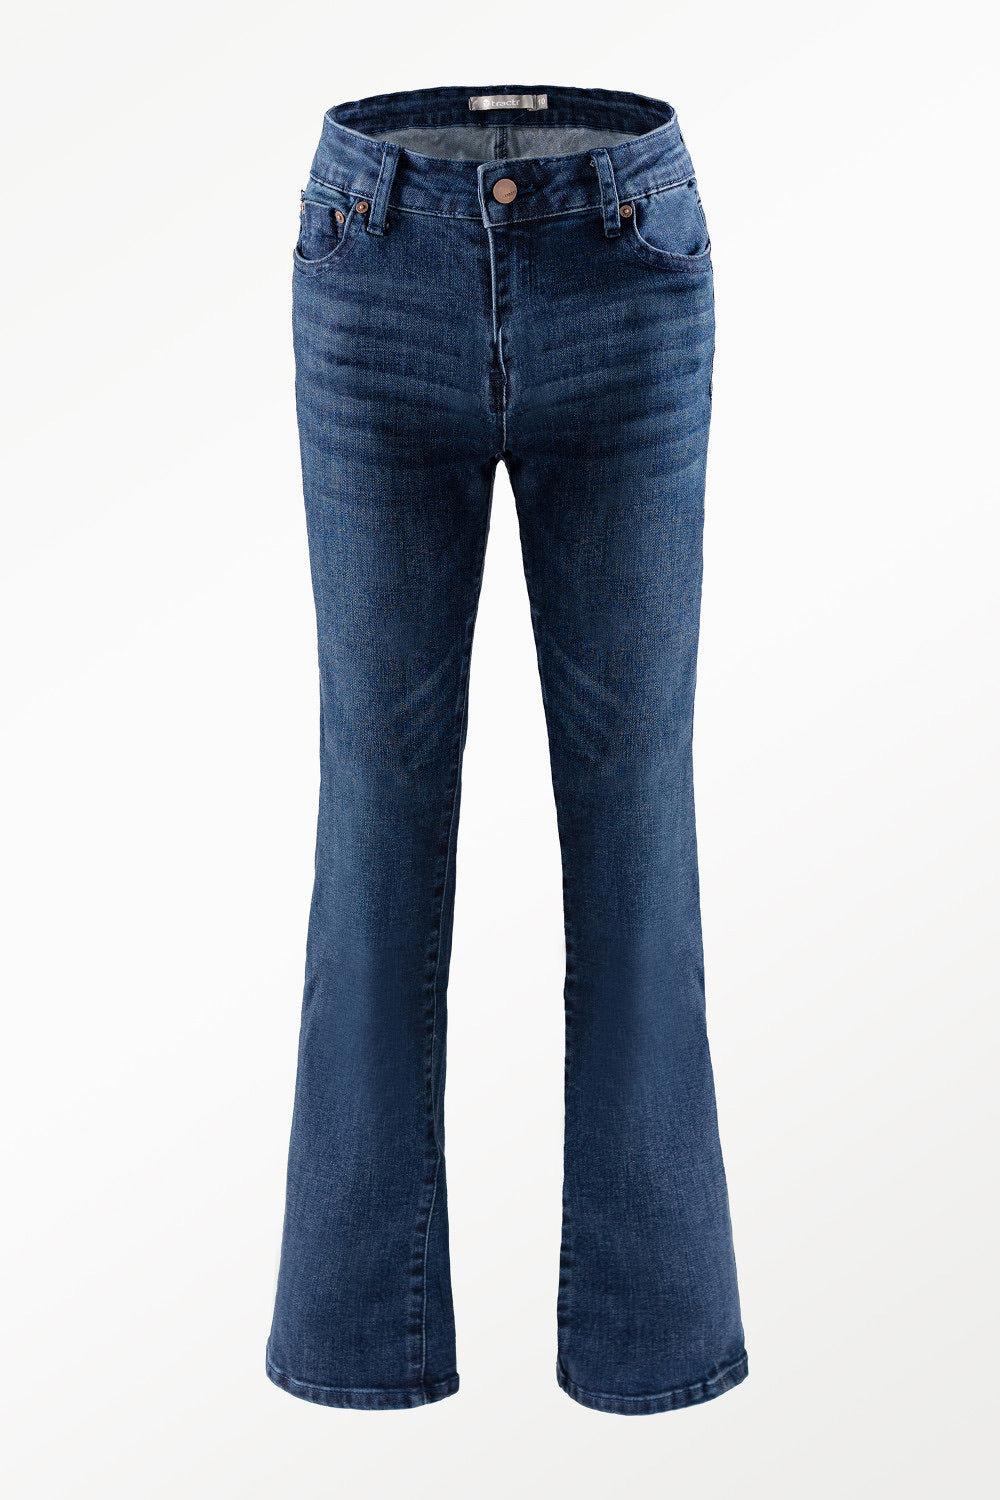 Tractr Basic Denim Bootcut Jeans